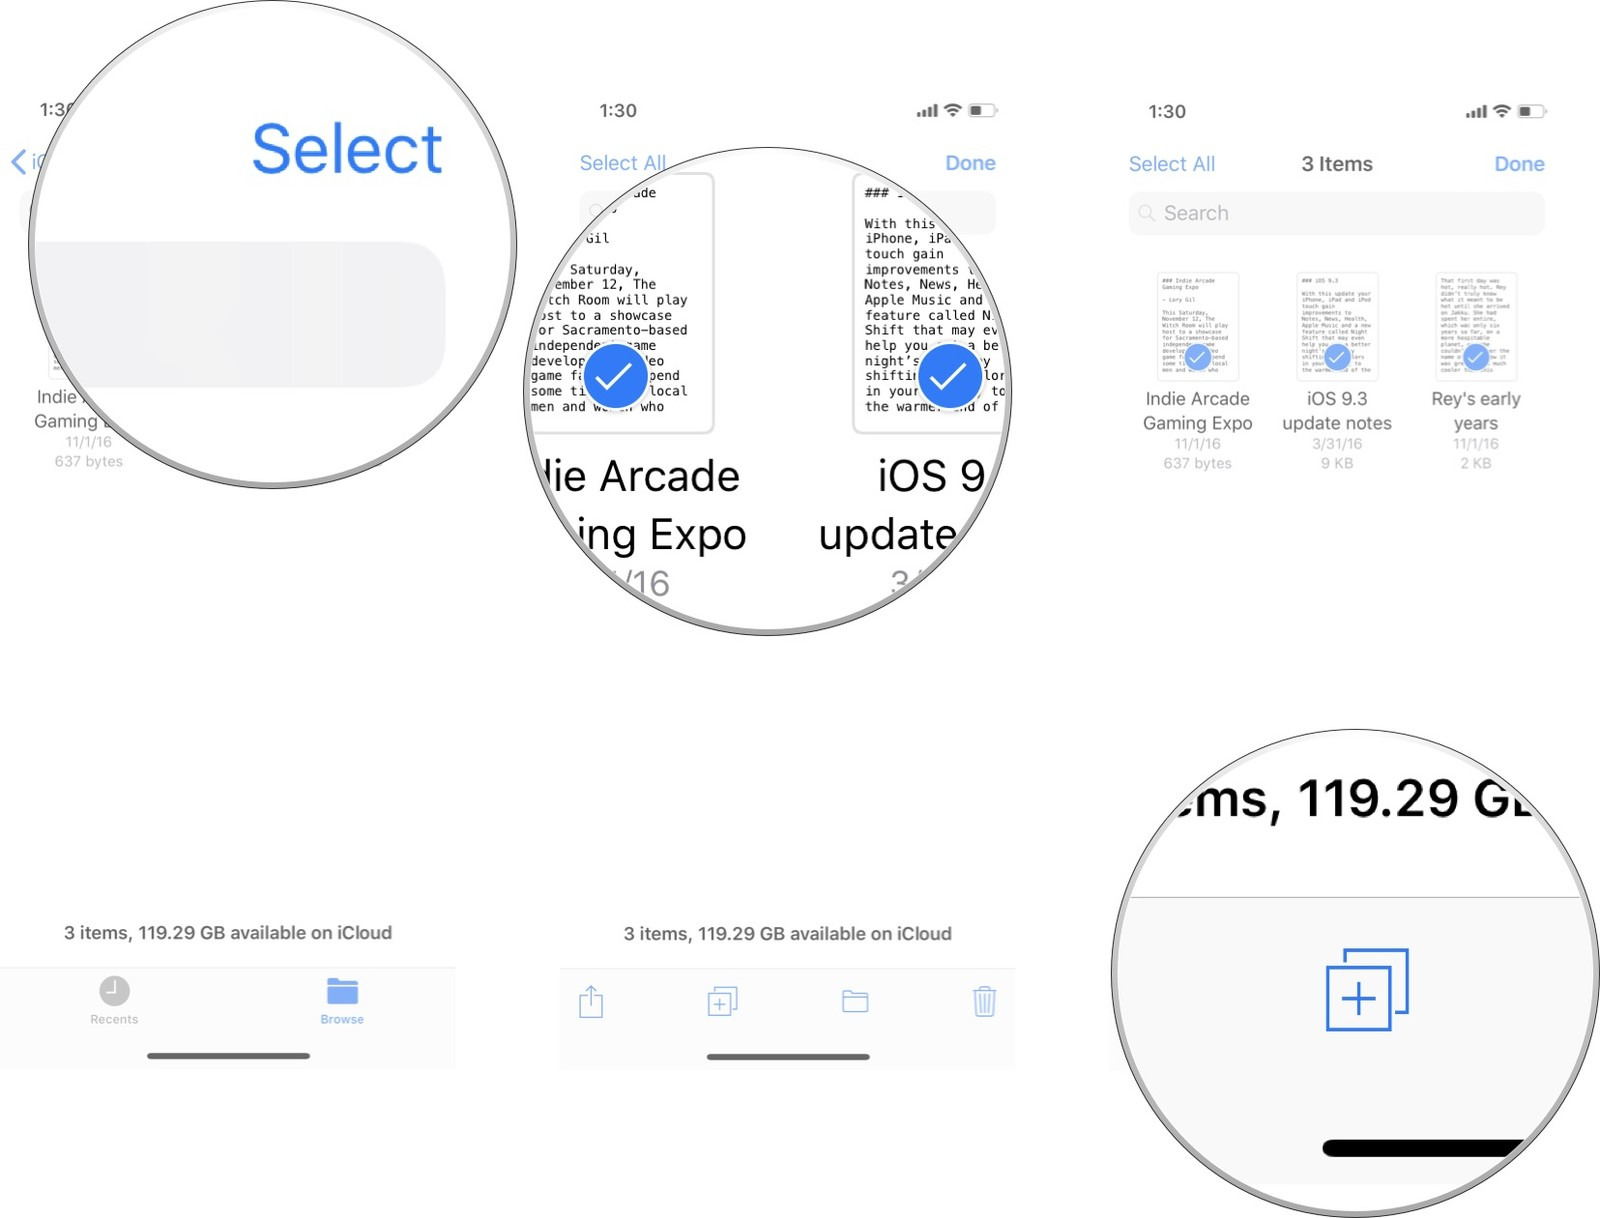 tap on Select, then select files, then tap the Copy icon